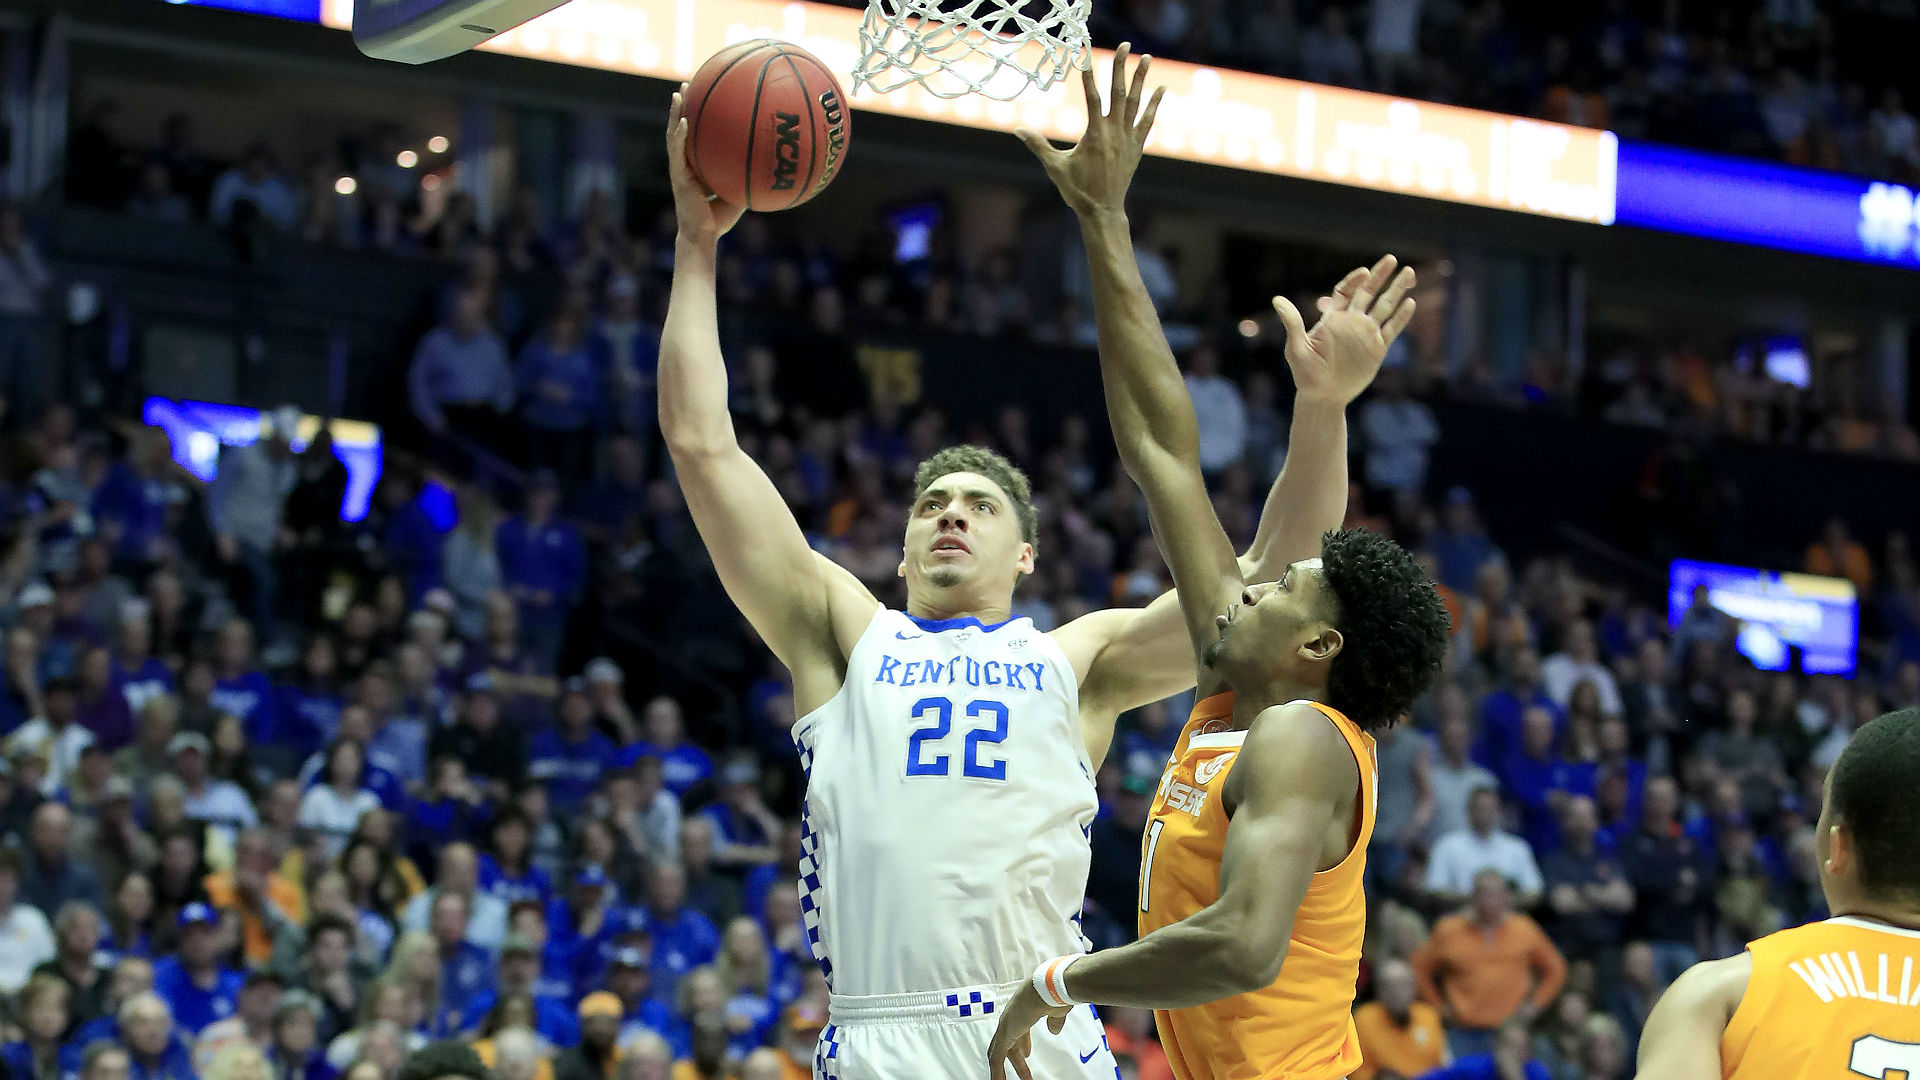 March Madness 2019: 3 Takeaways From Tennessee's SEC